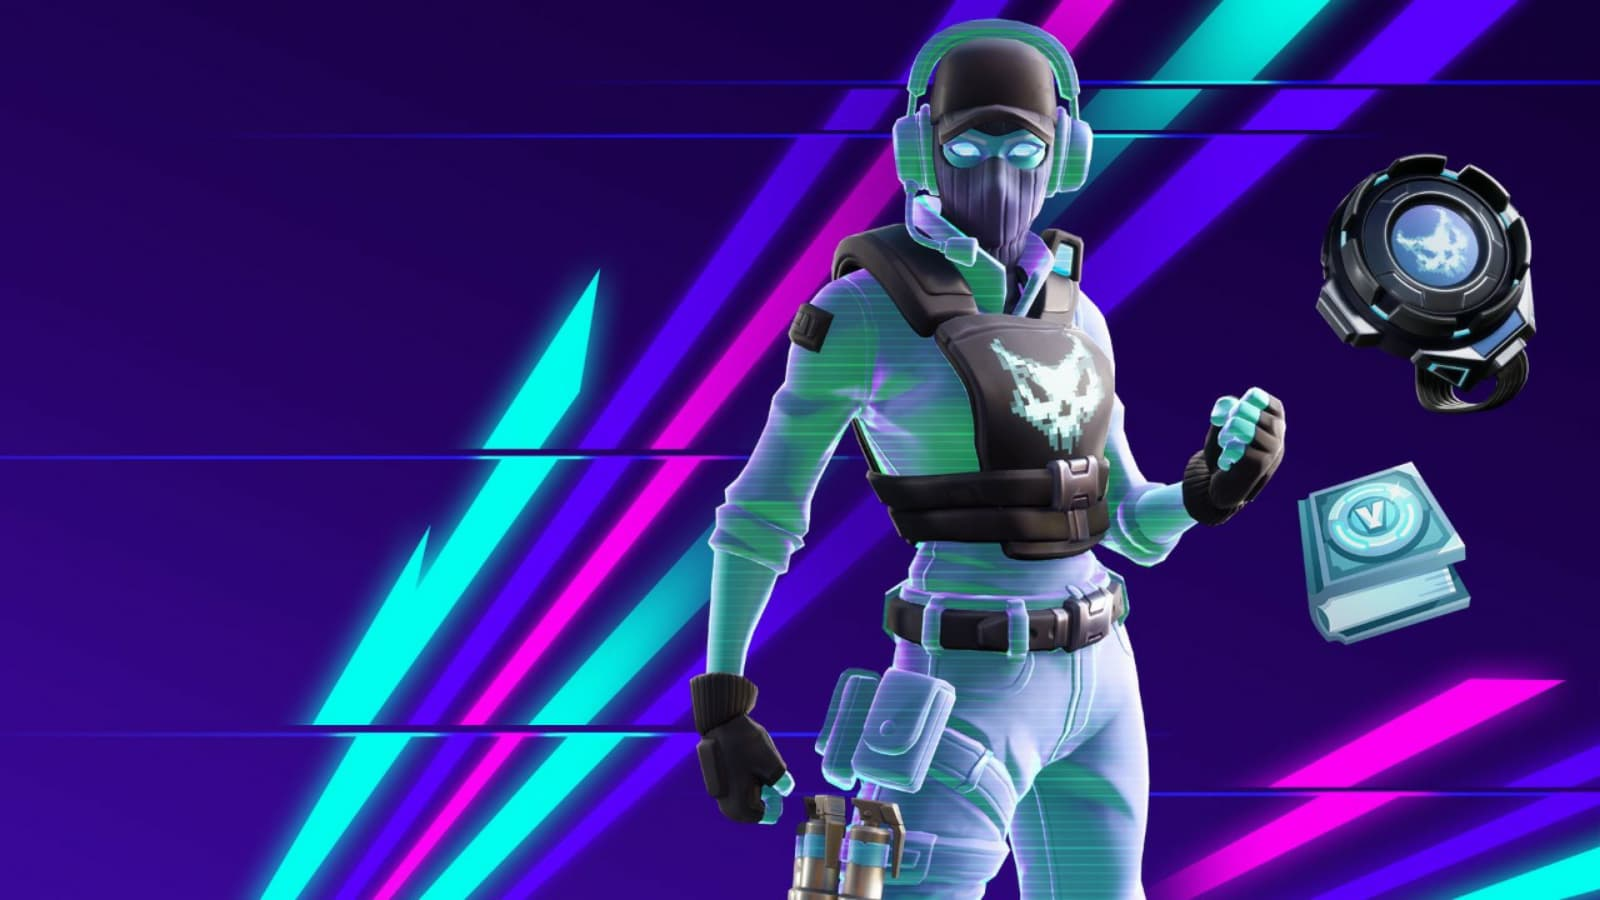 How to get the new Fortnite Breakpoint skin and challenge pack